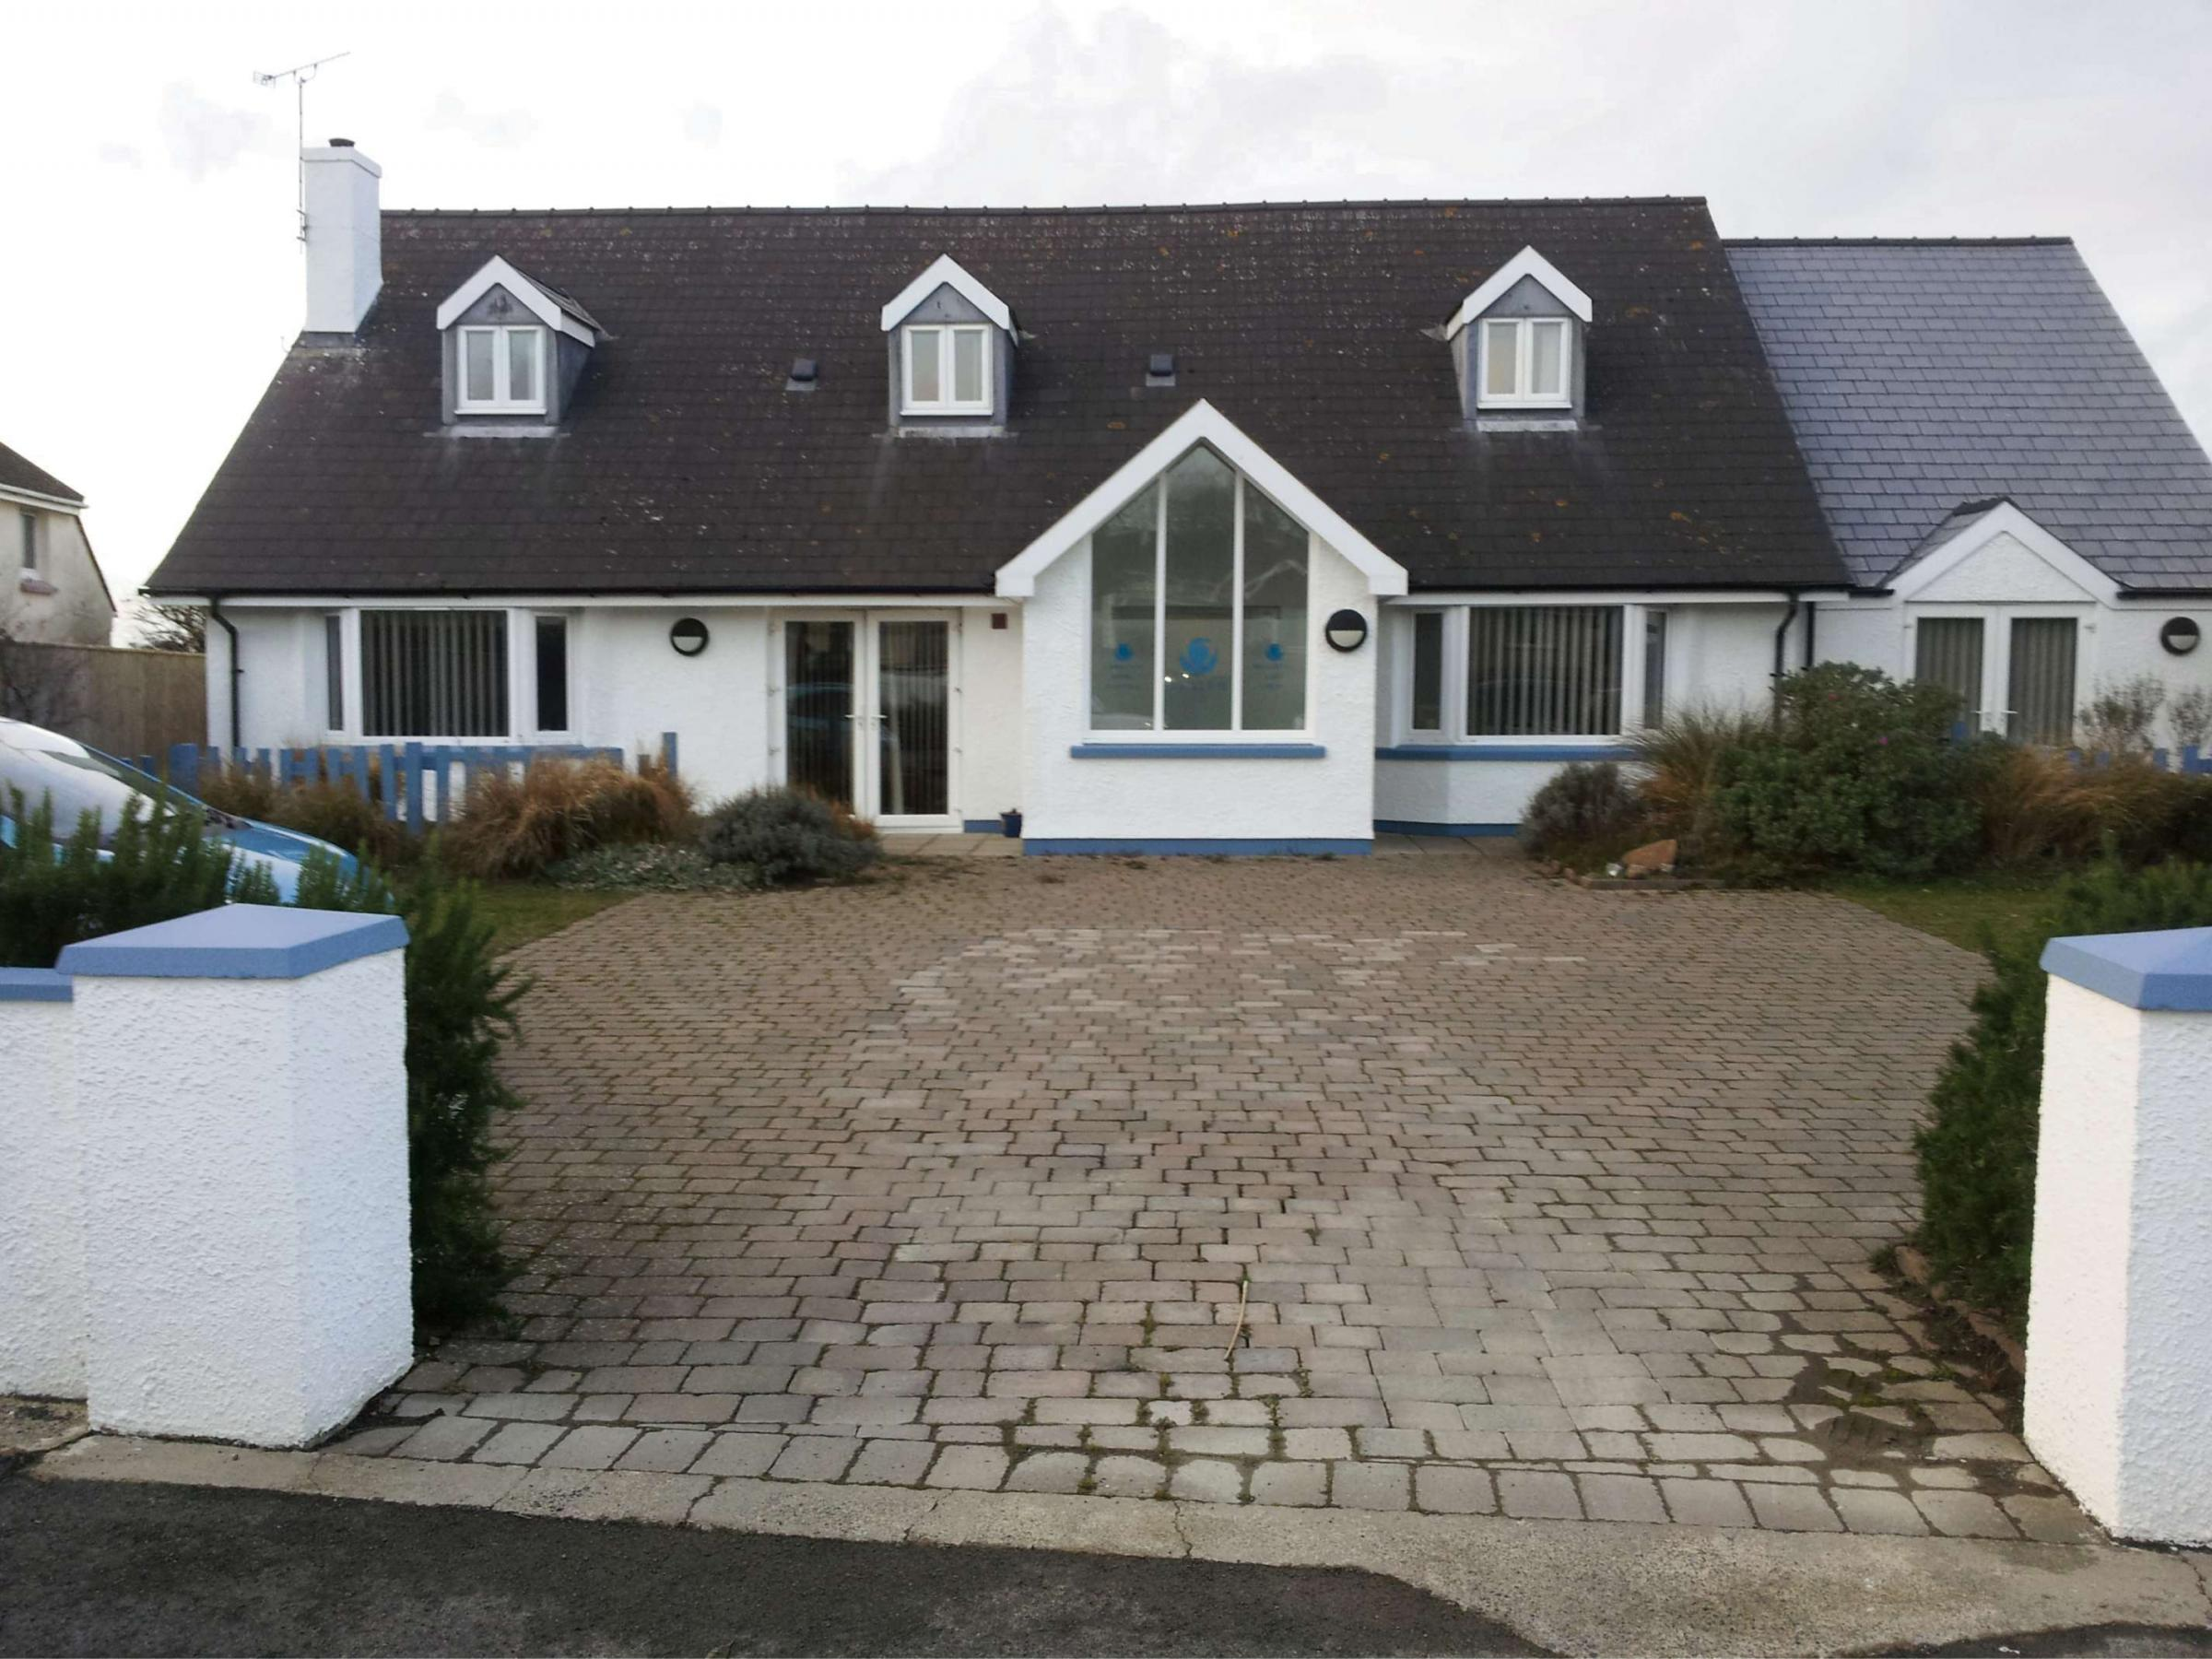 PALLIATIVE CARE CENTRE: Shalom House in St Davids PICTURE: Western Telegraph